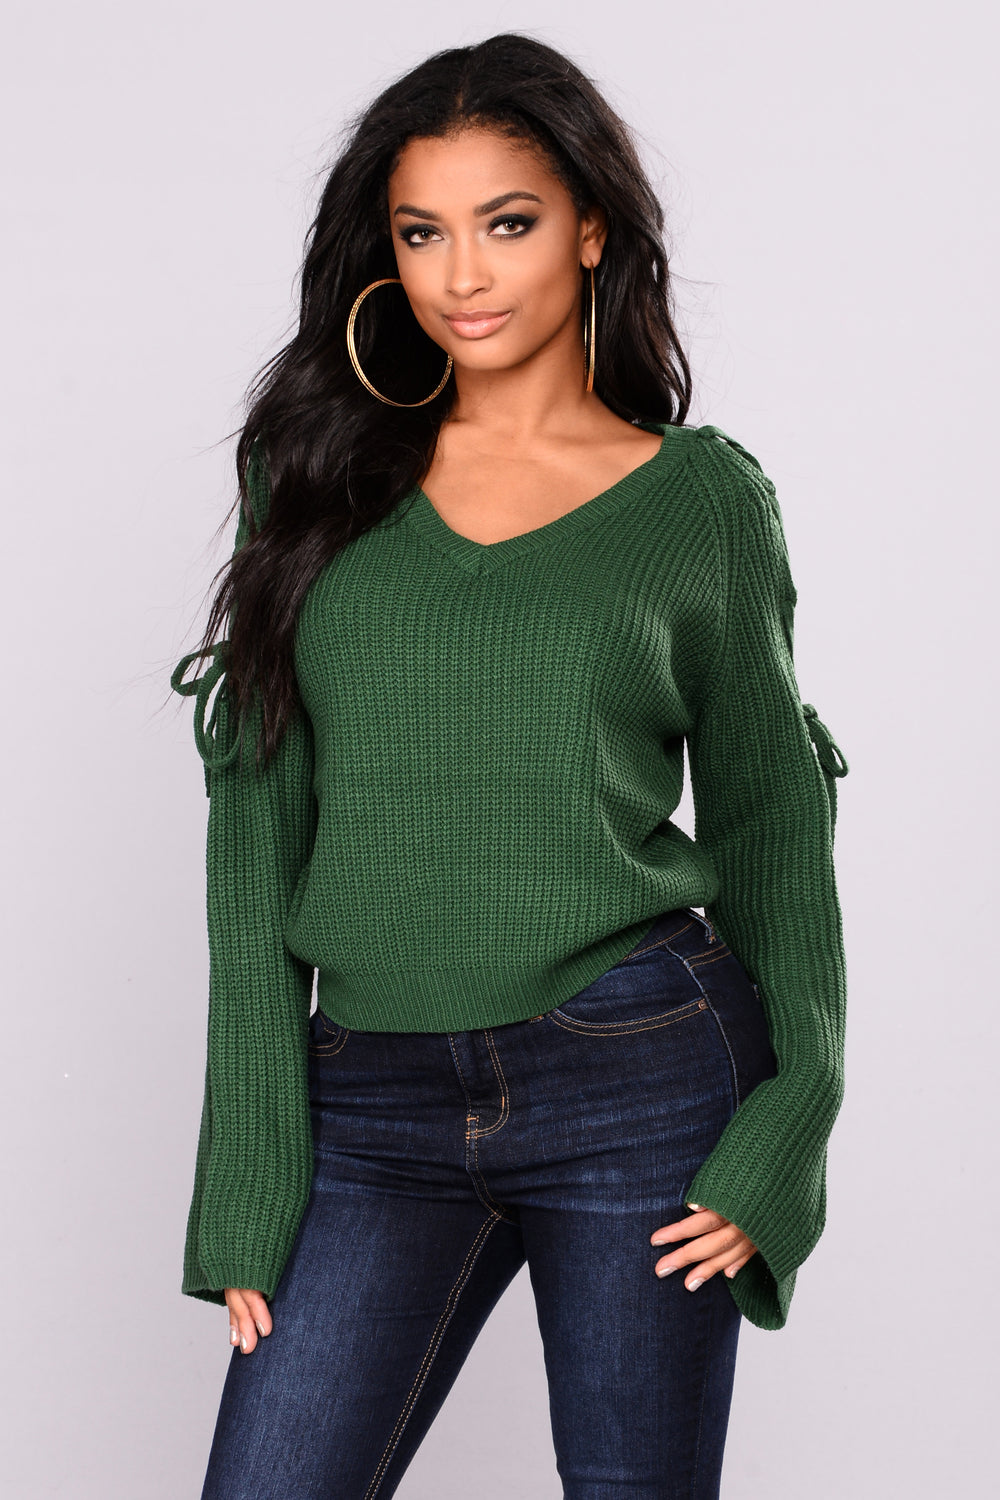 Vienna Lace Up Sweater - Green